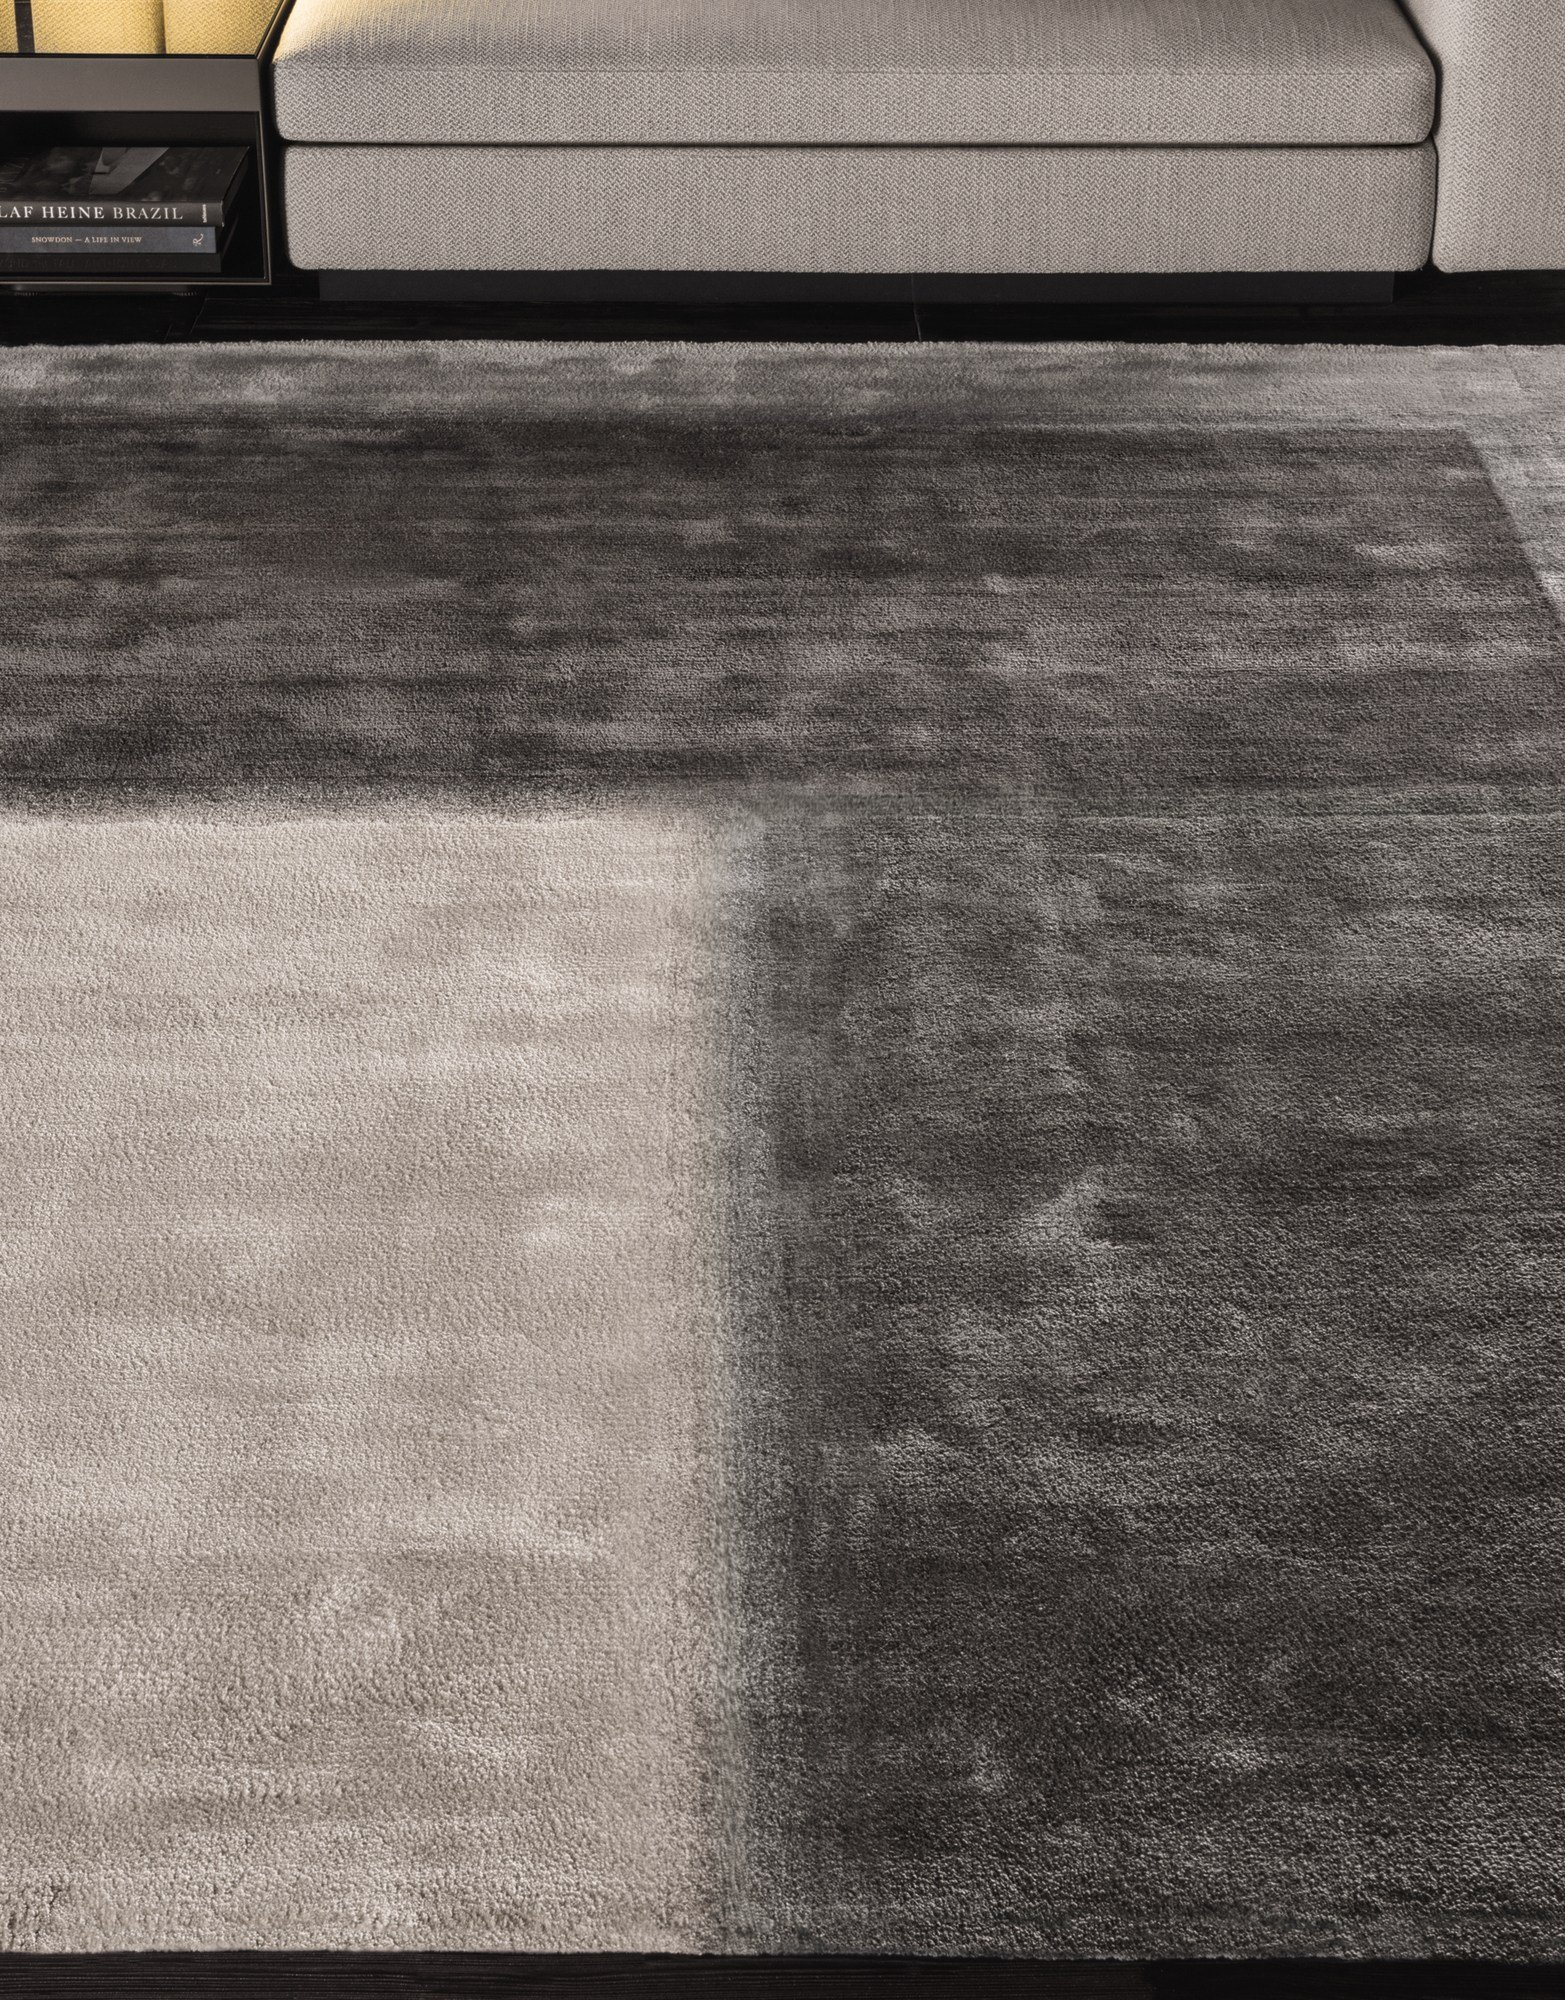 Tappeto landfield rug by minotti for Lattice prevulcanizzato